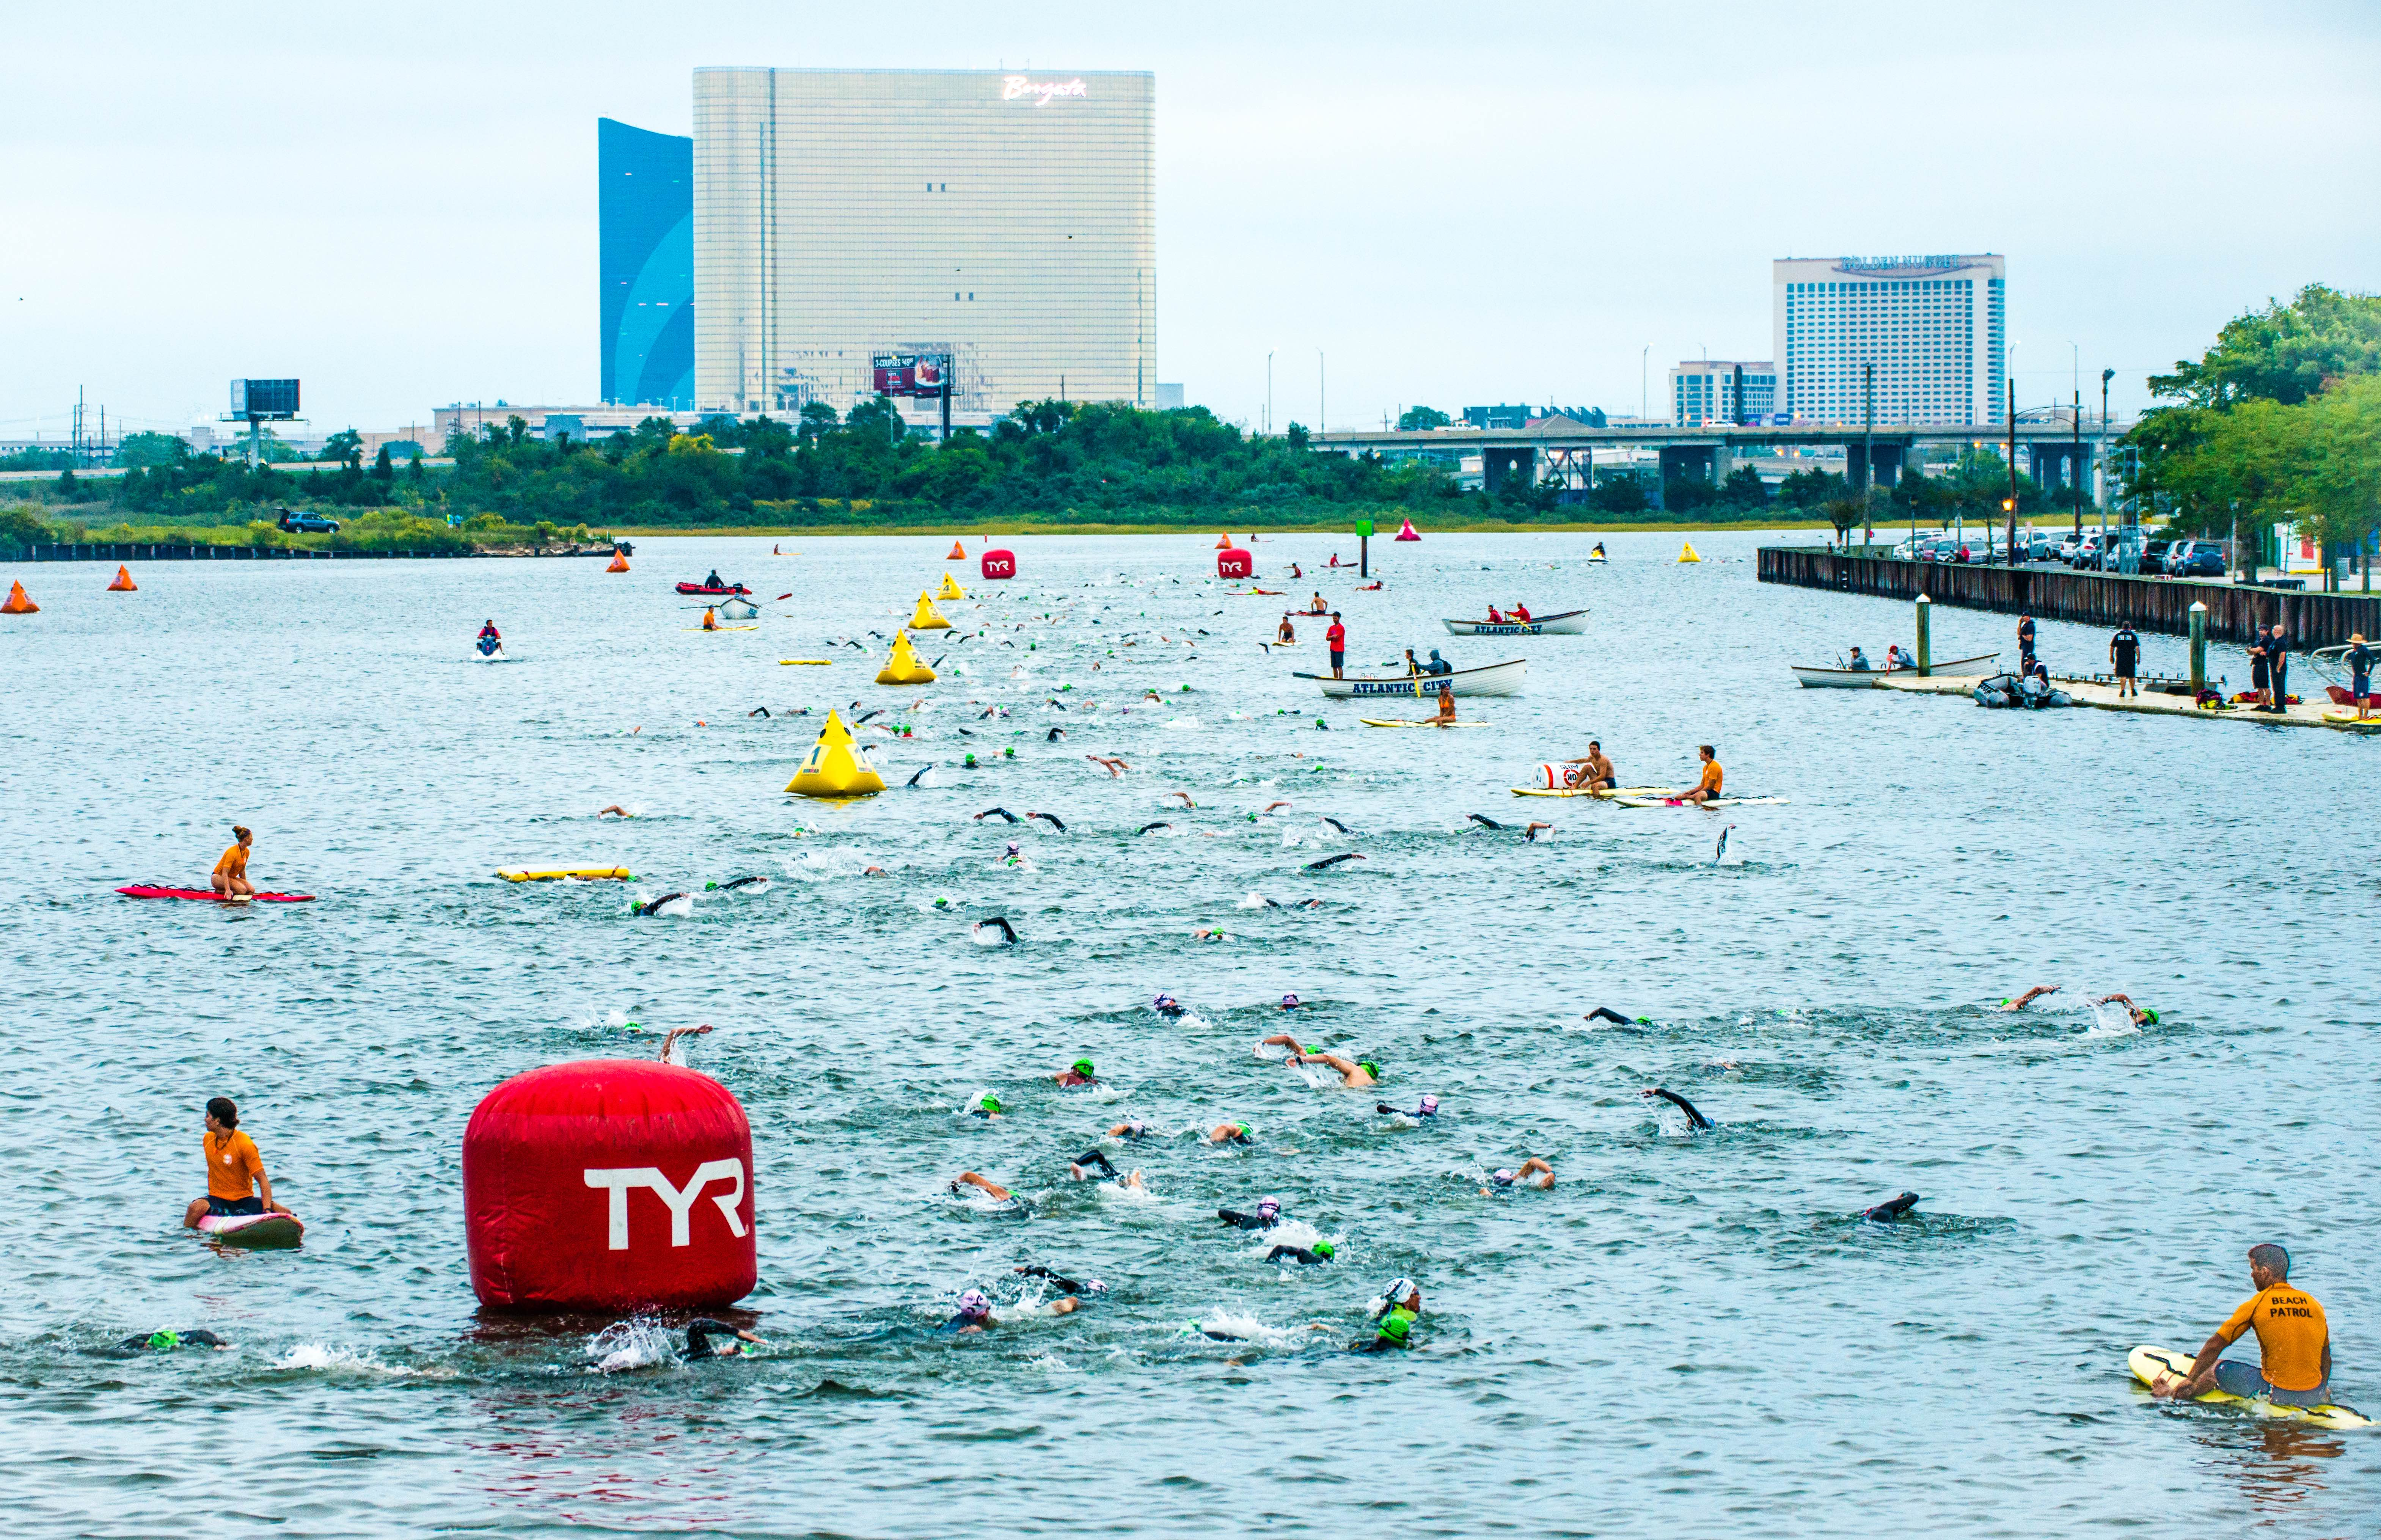 swim - Ironman 70.3 Atlantic City